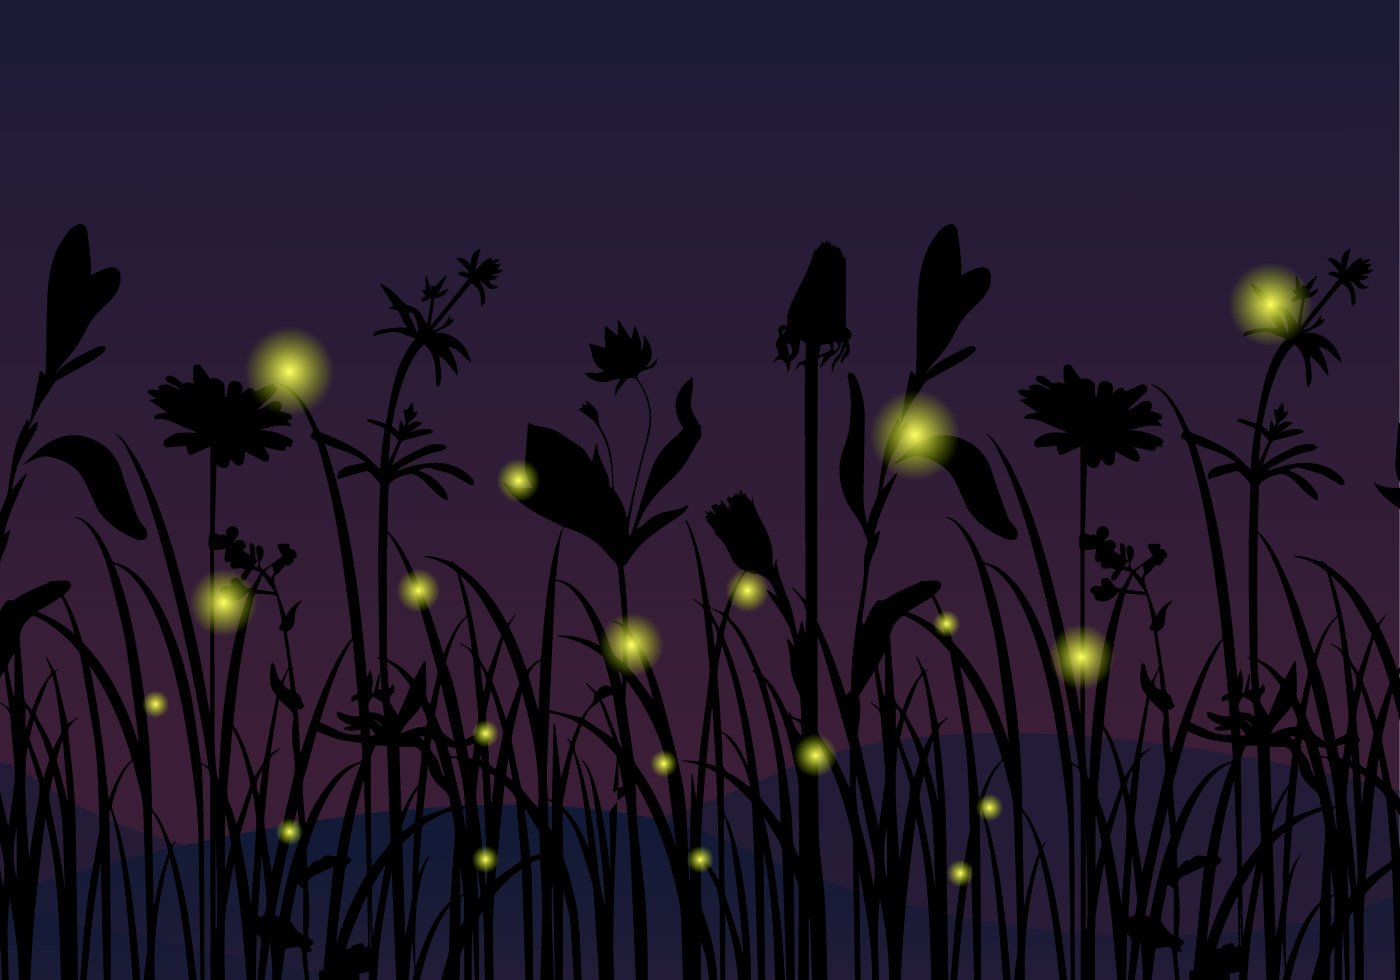 Firefly Insect At Night Firefly Vector Download Free Vector Art Stock Graphics